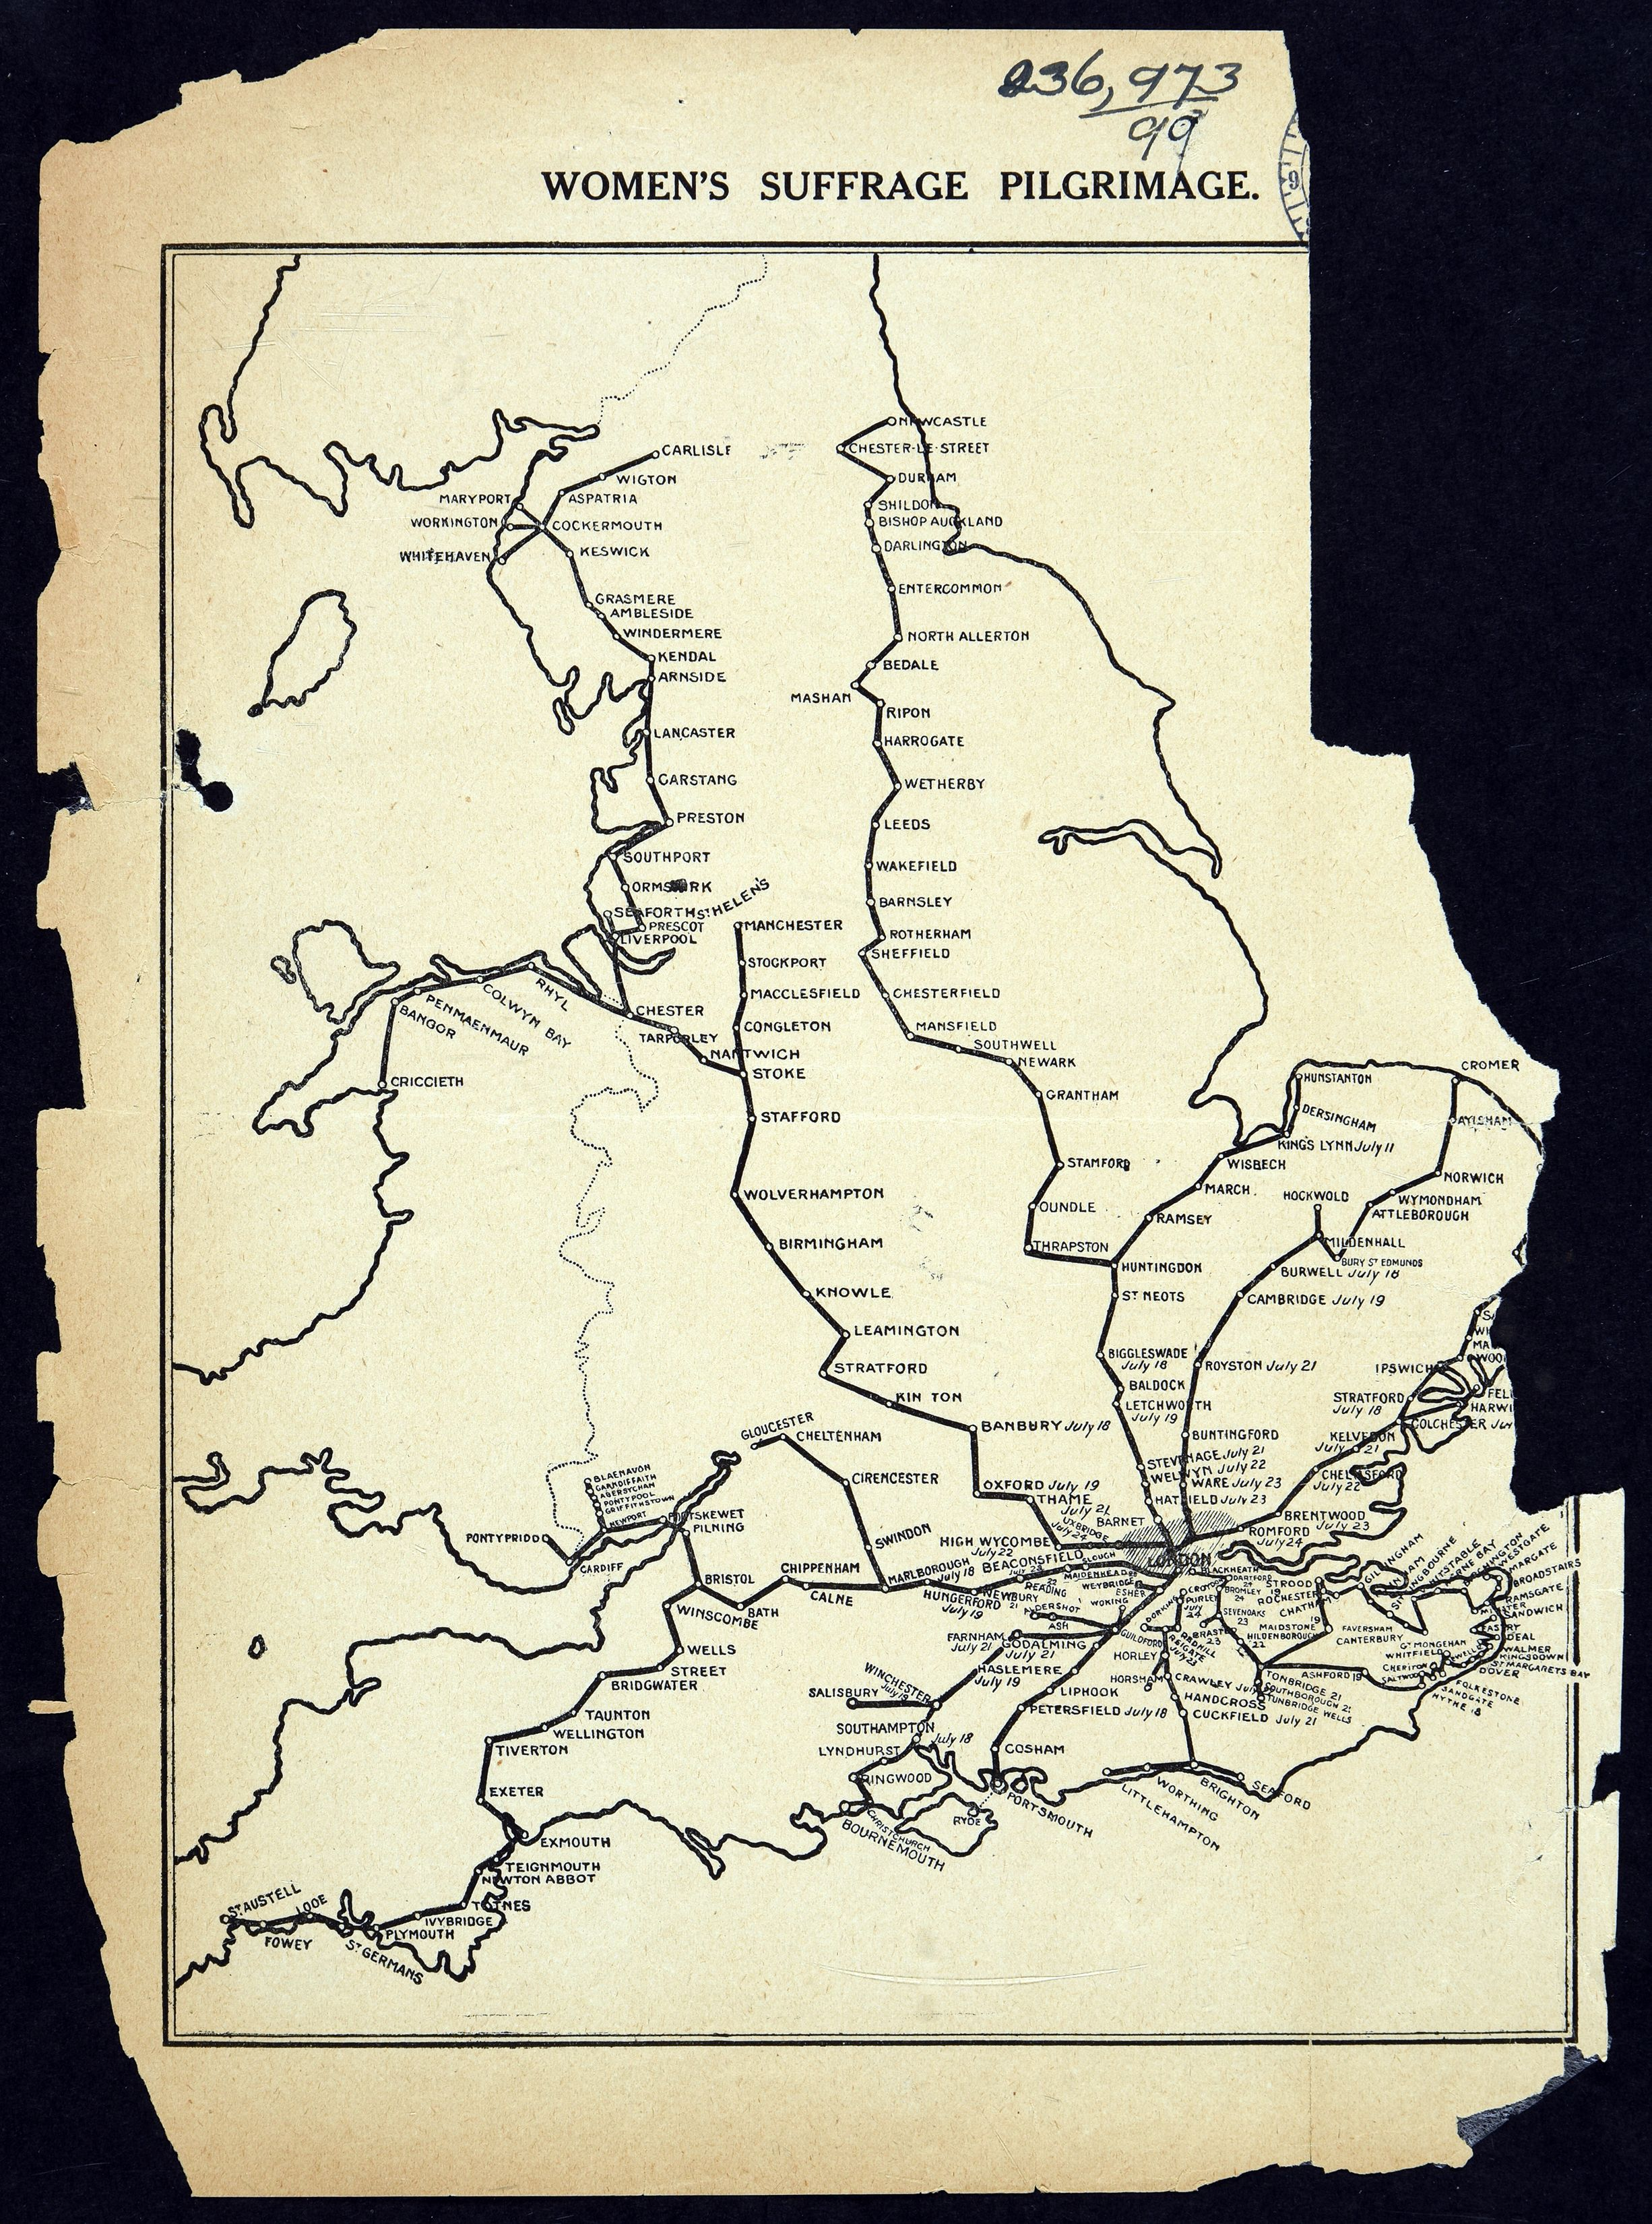 HO45/10701/236973 Womens Suffrage Pilgrimage Map